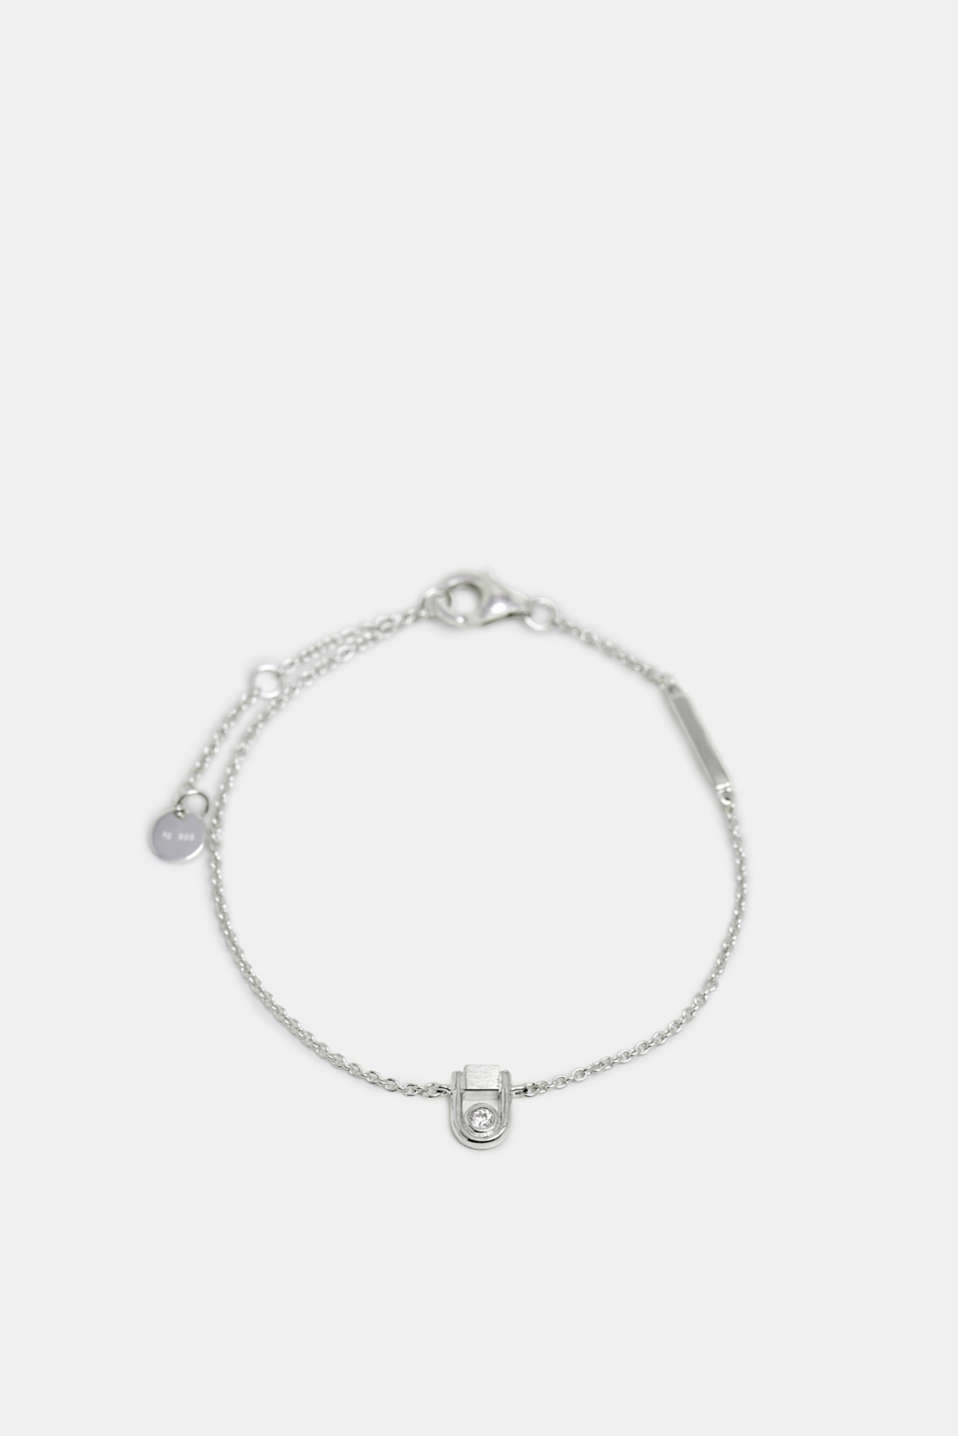 Bracelet with zirconia charm, sterling silver, SILVER, detail image number 0